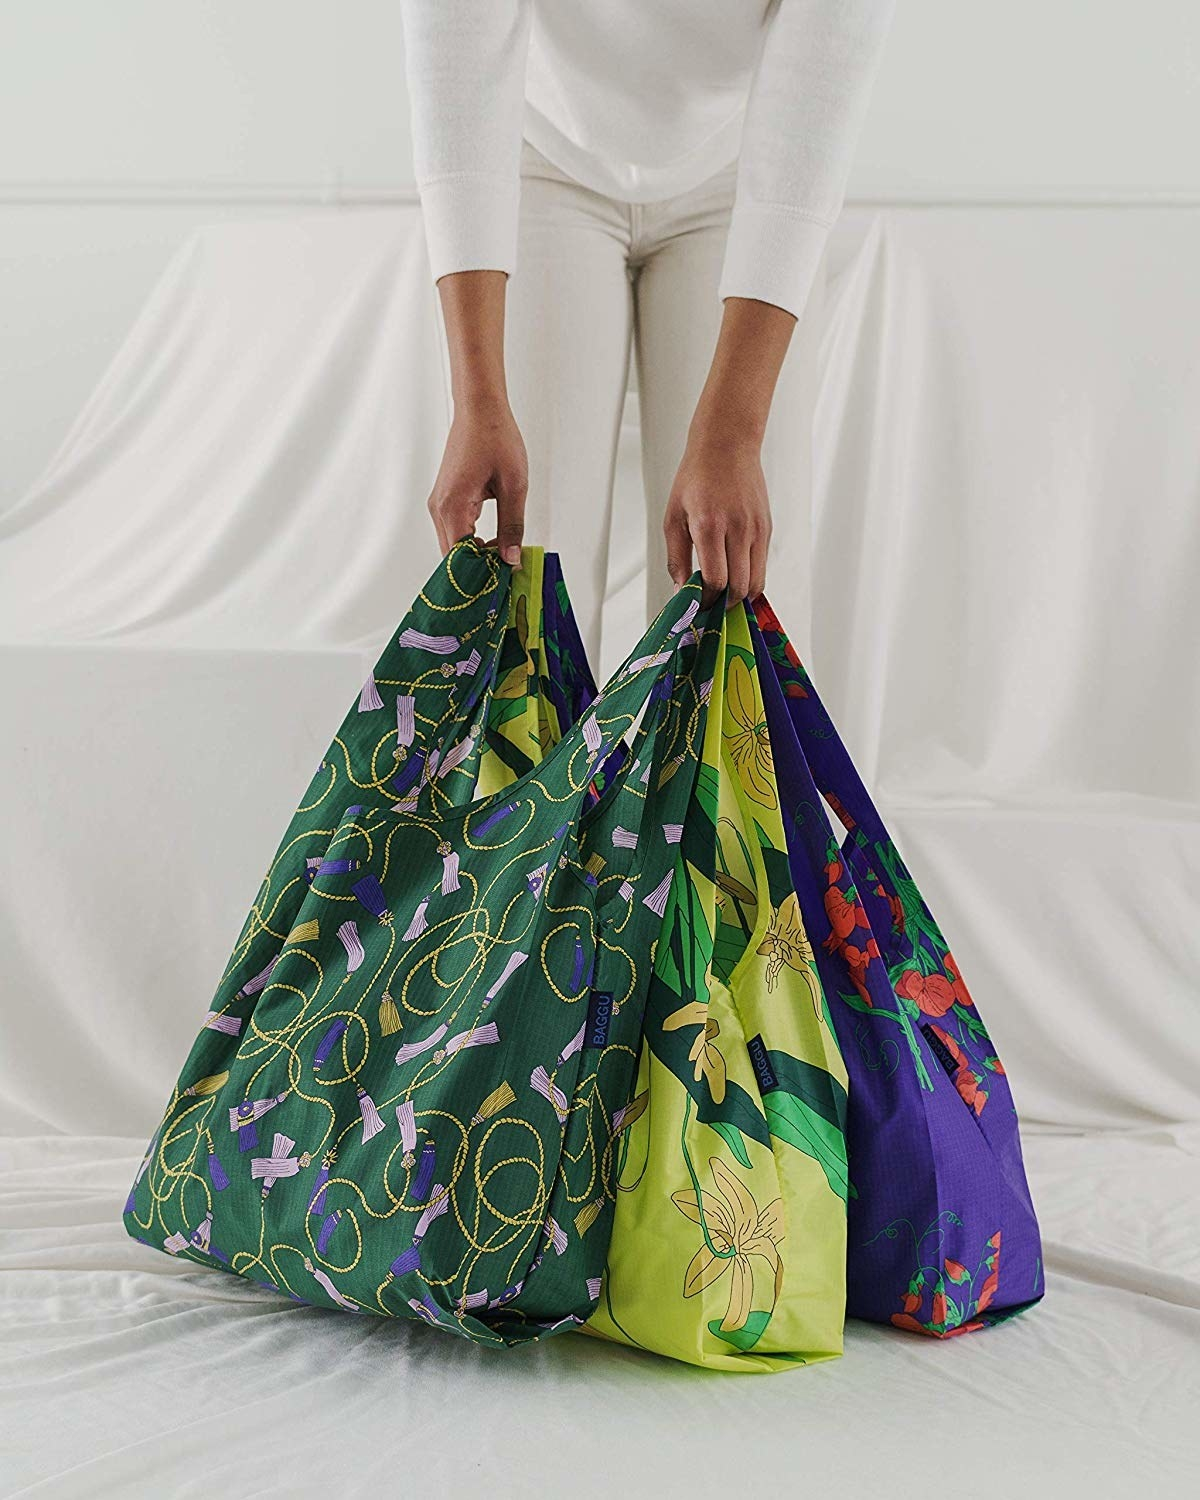 model holding three various patterned reusable totes